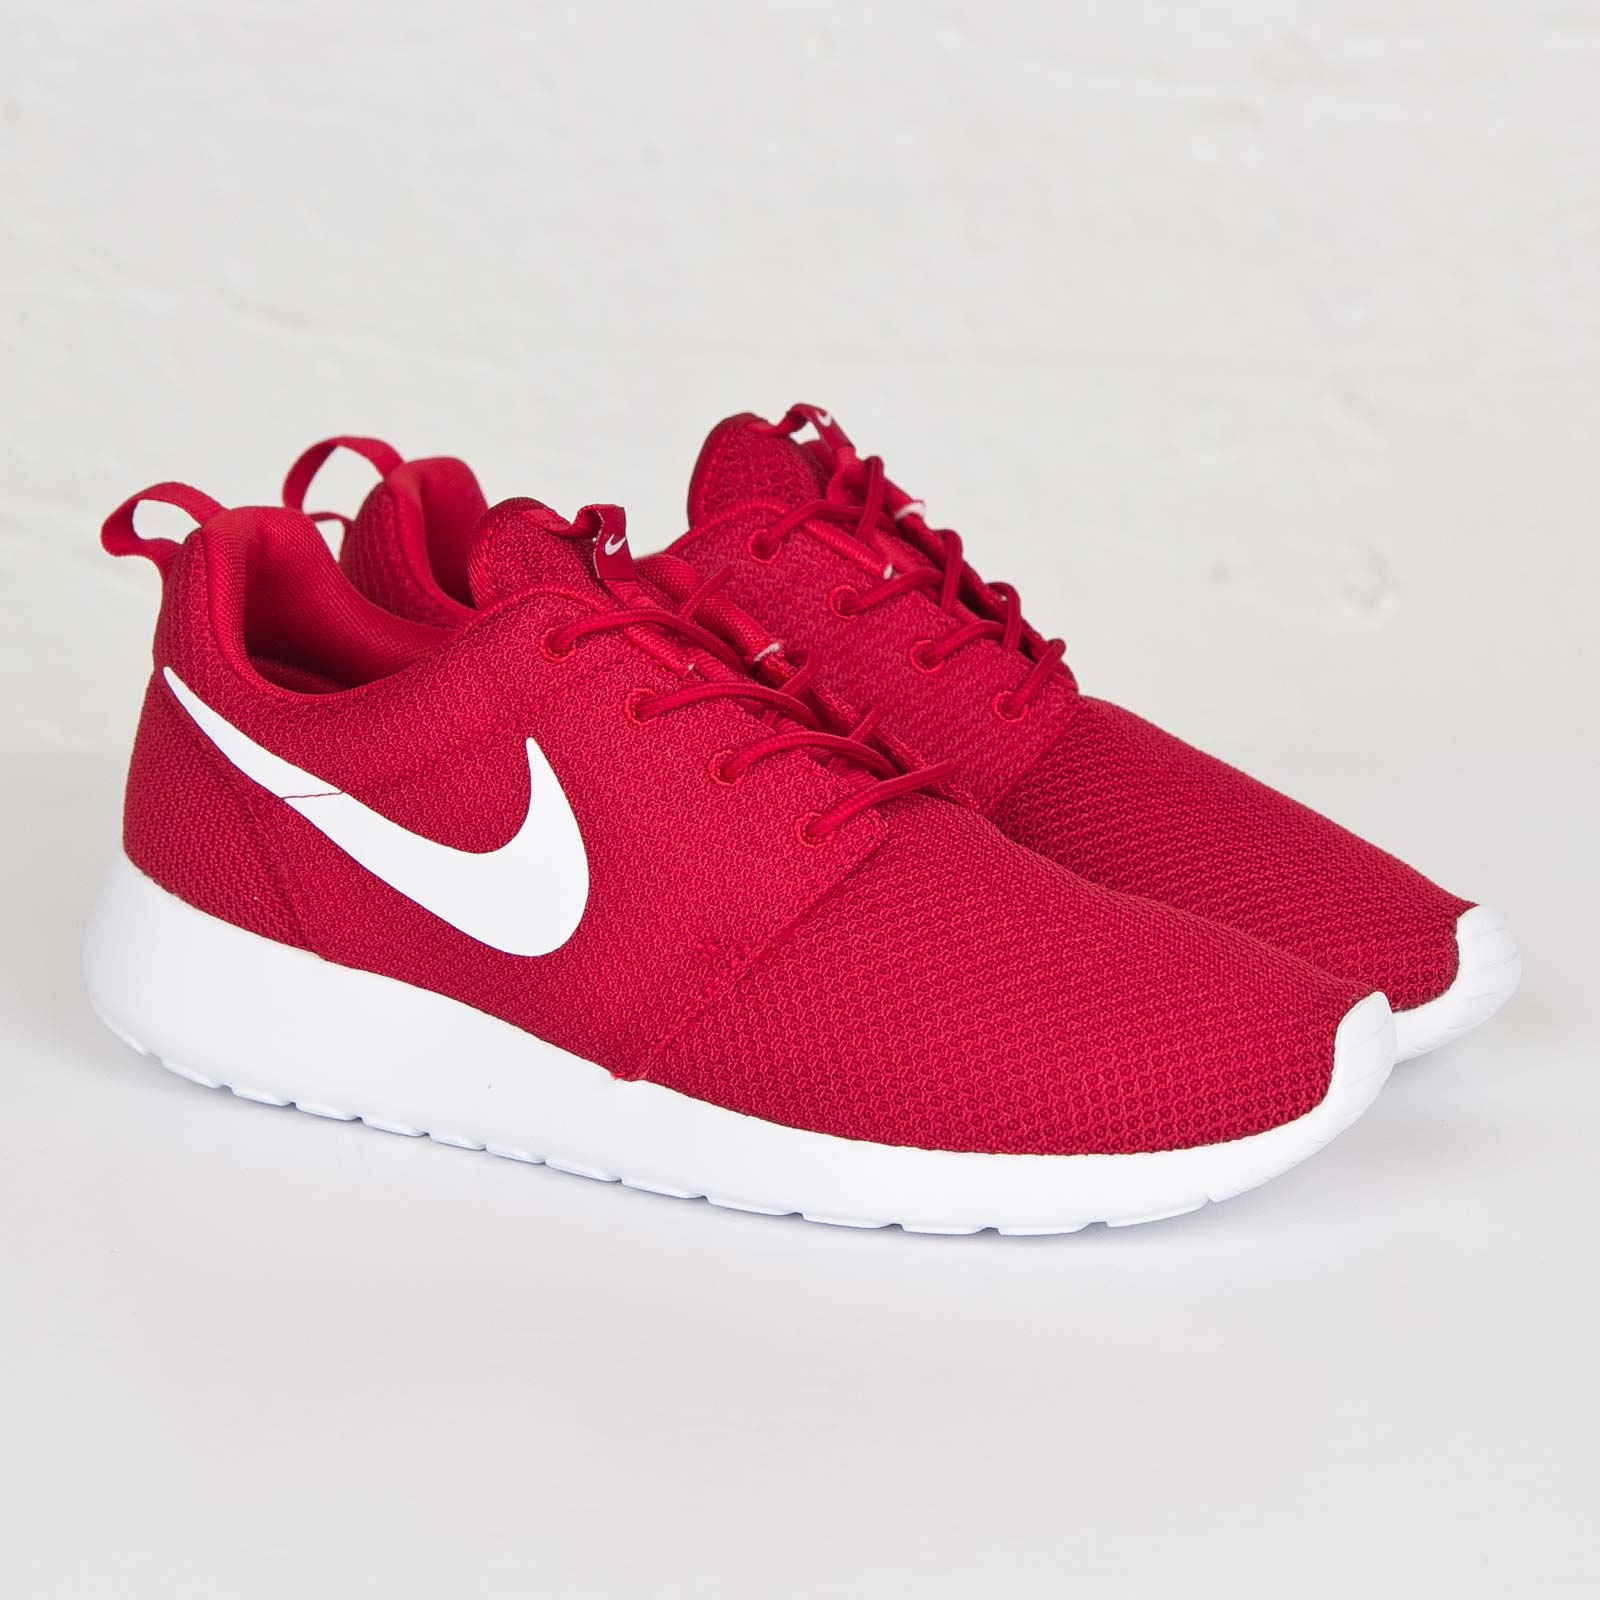 new products 9d1aa e4b85 Nike Roshe One - 511881-612 - Sneakersnstuff   sneakers ...